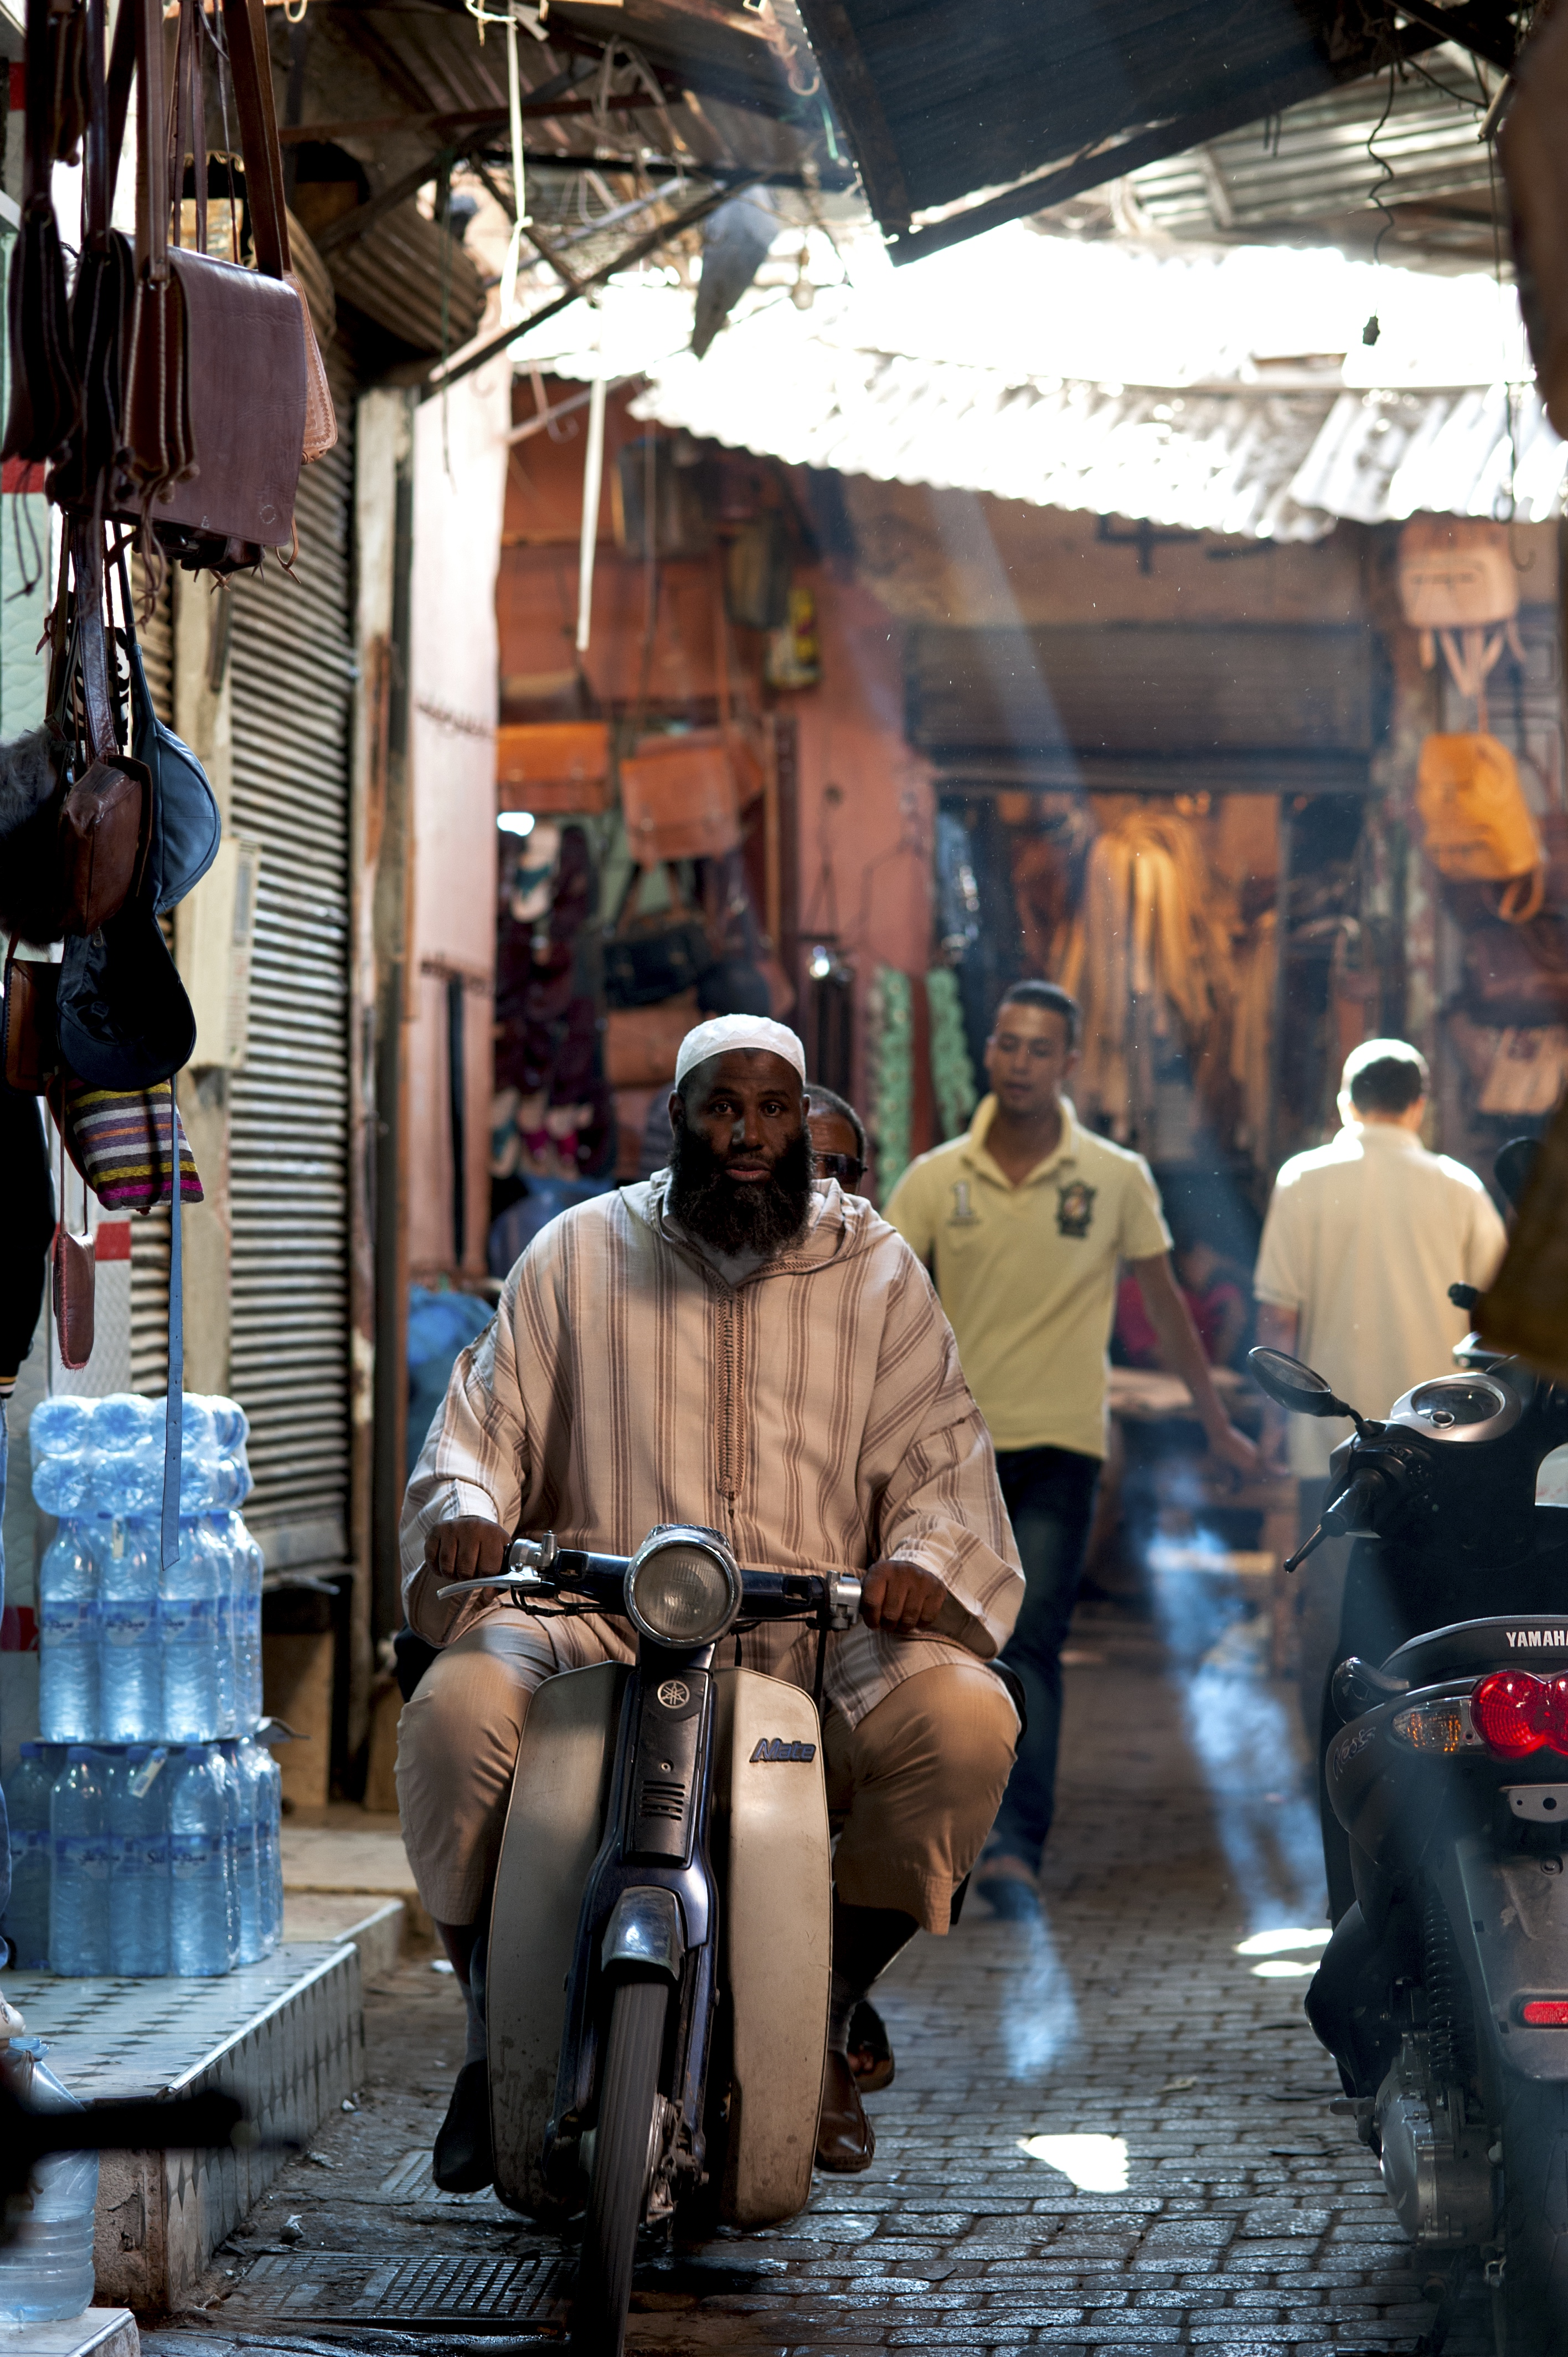 Scooter in the Souk, Marrakesh